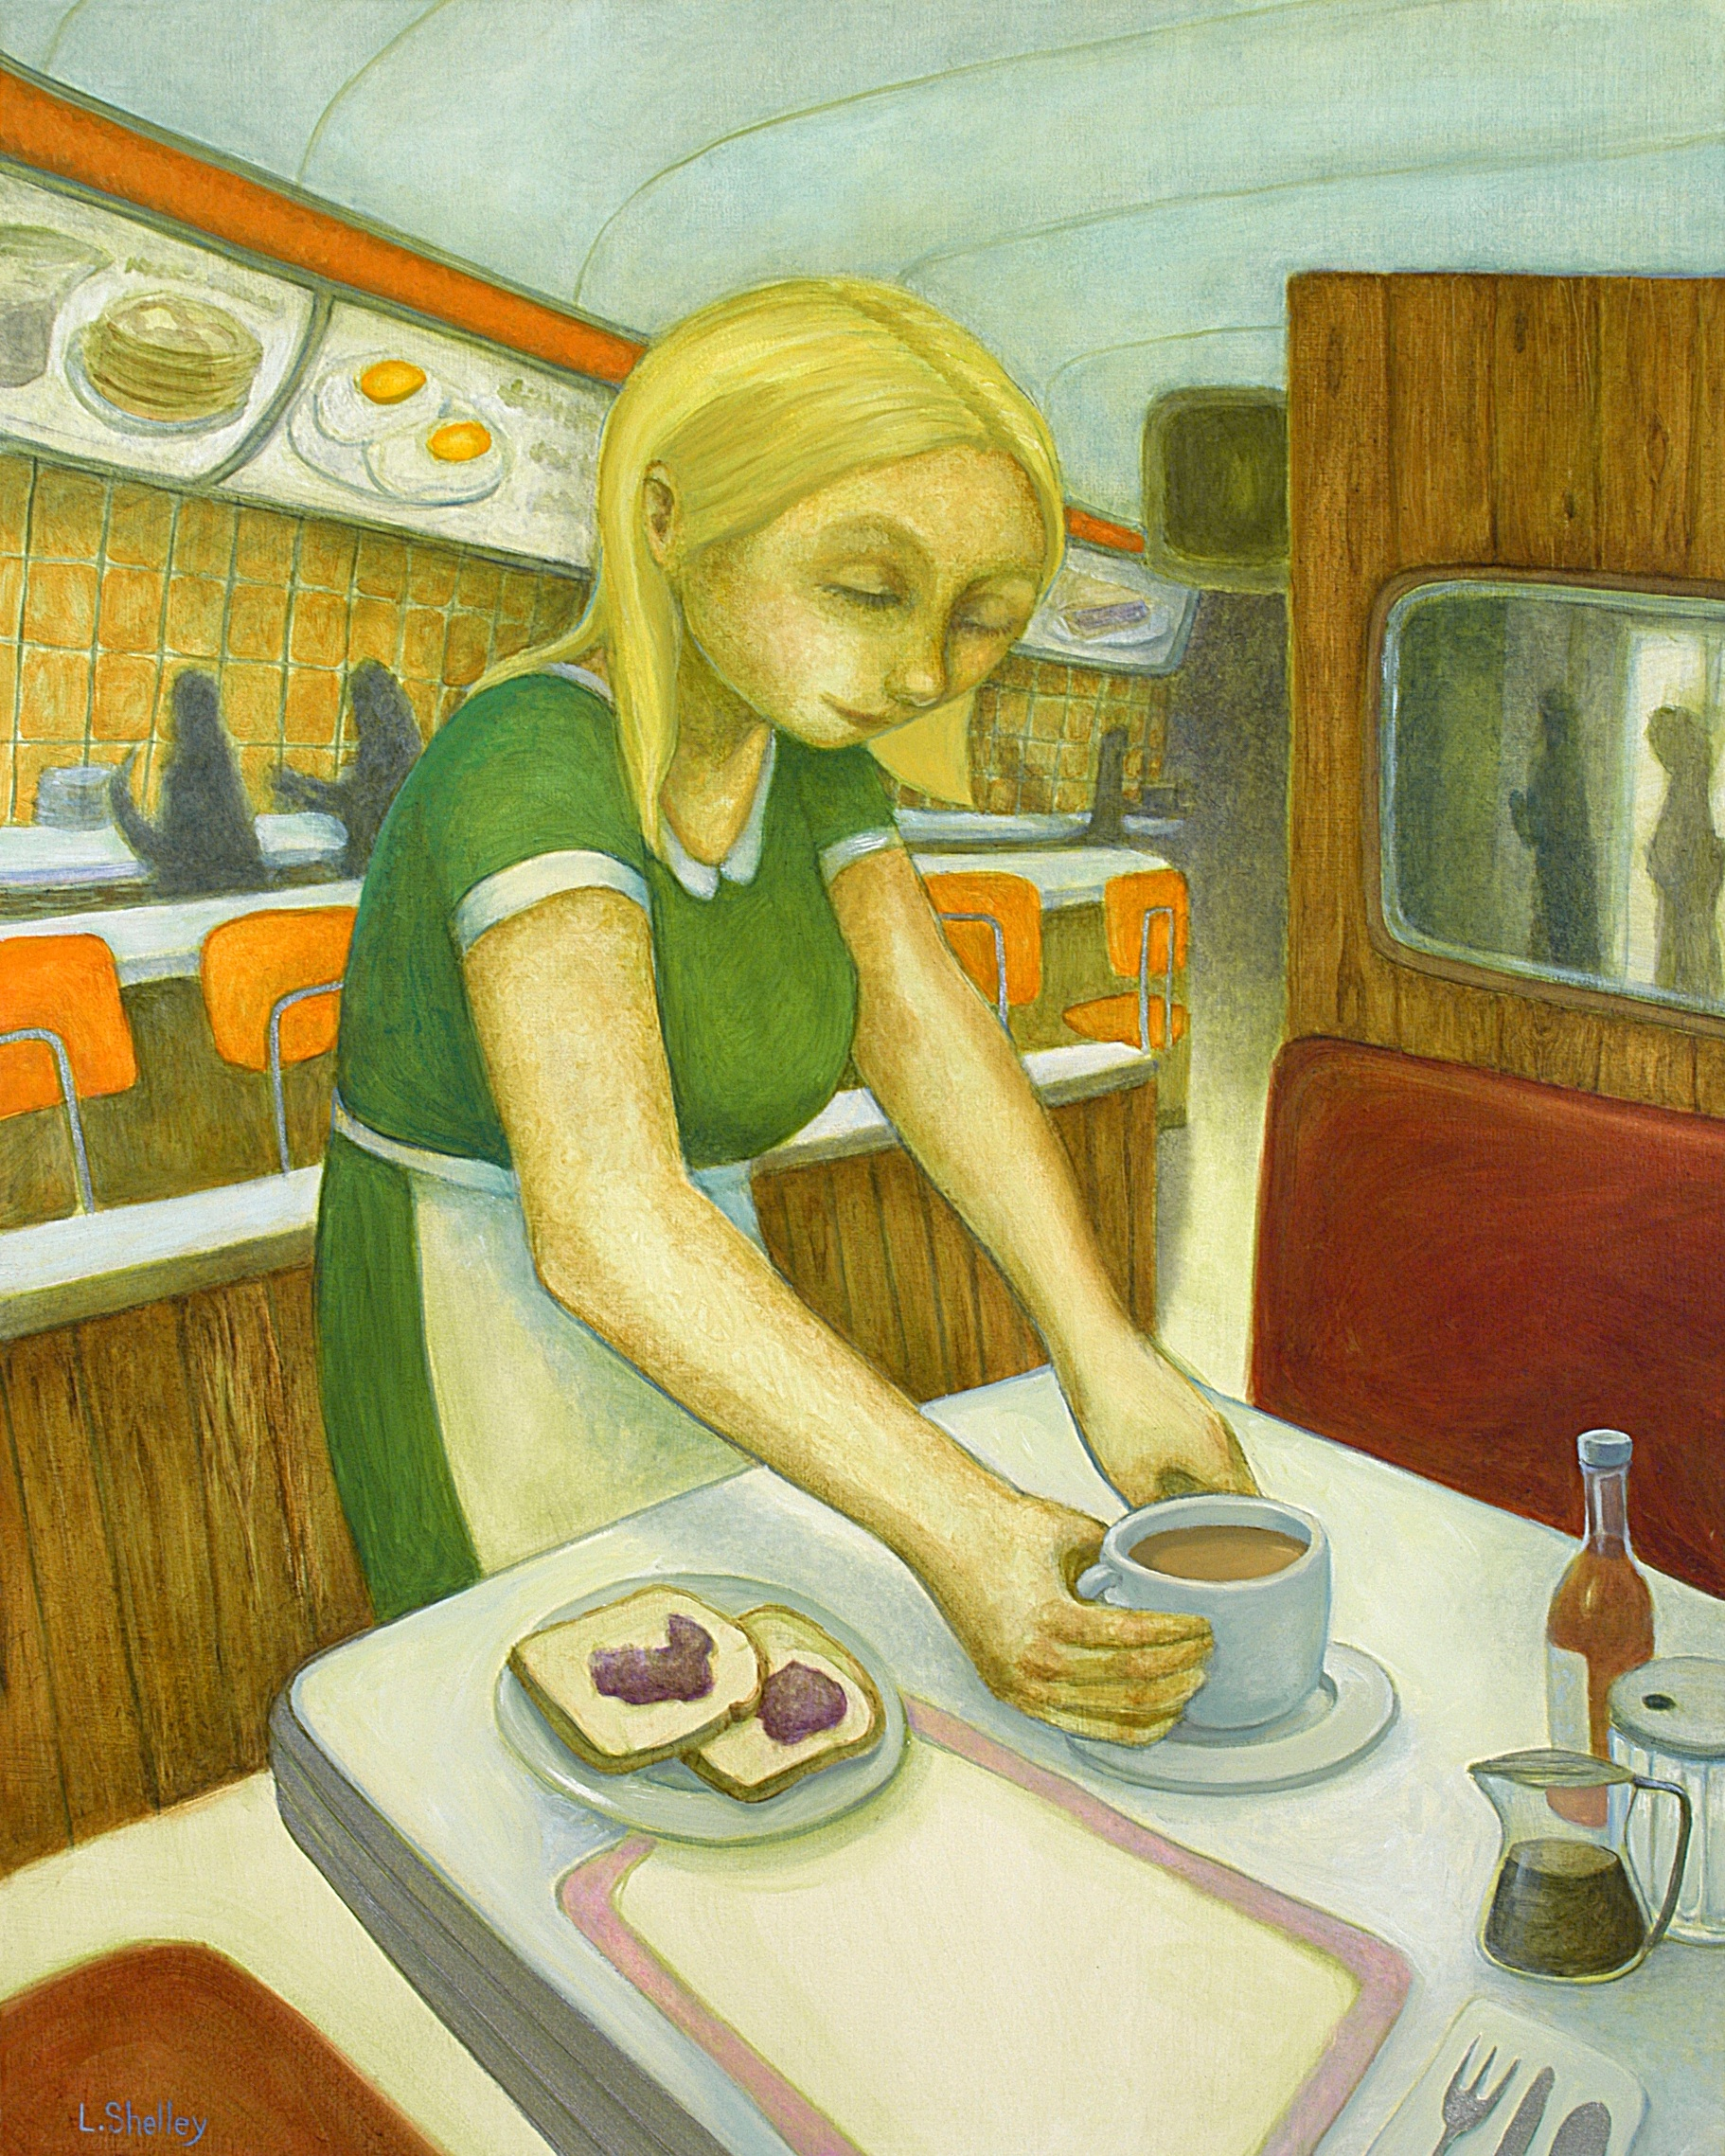 Diner Series - Toast and Jelly - sold